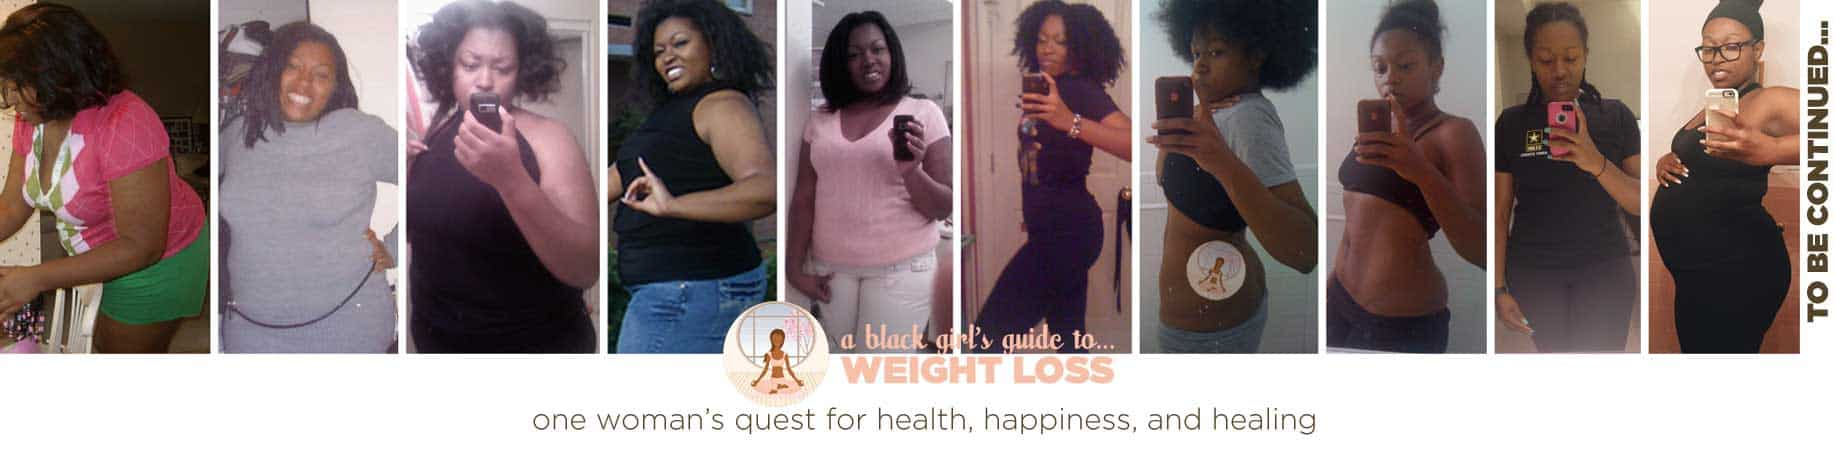 A Black Girl's Guide To Weight Loss | Weight Loss Blog